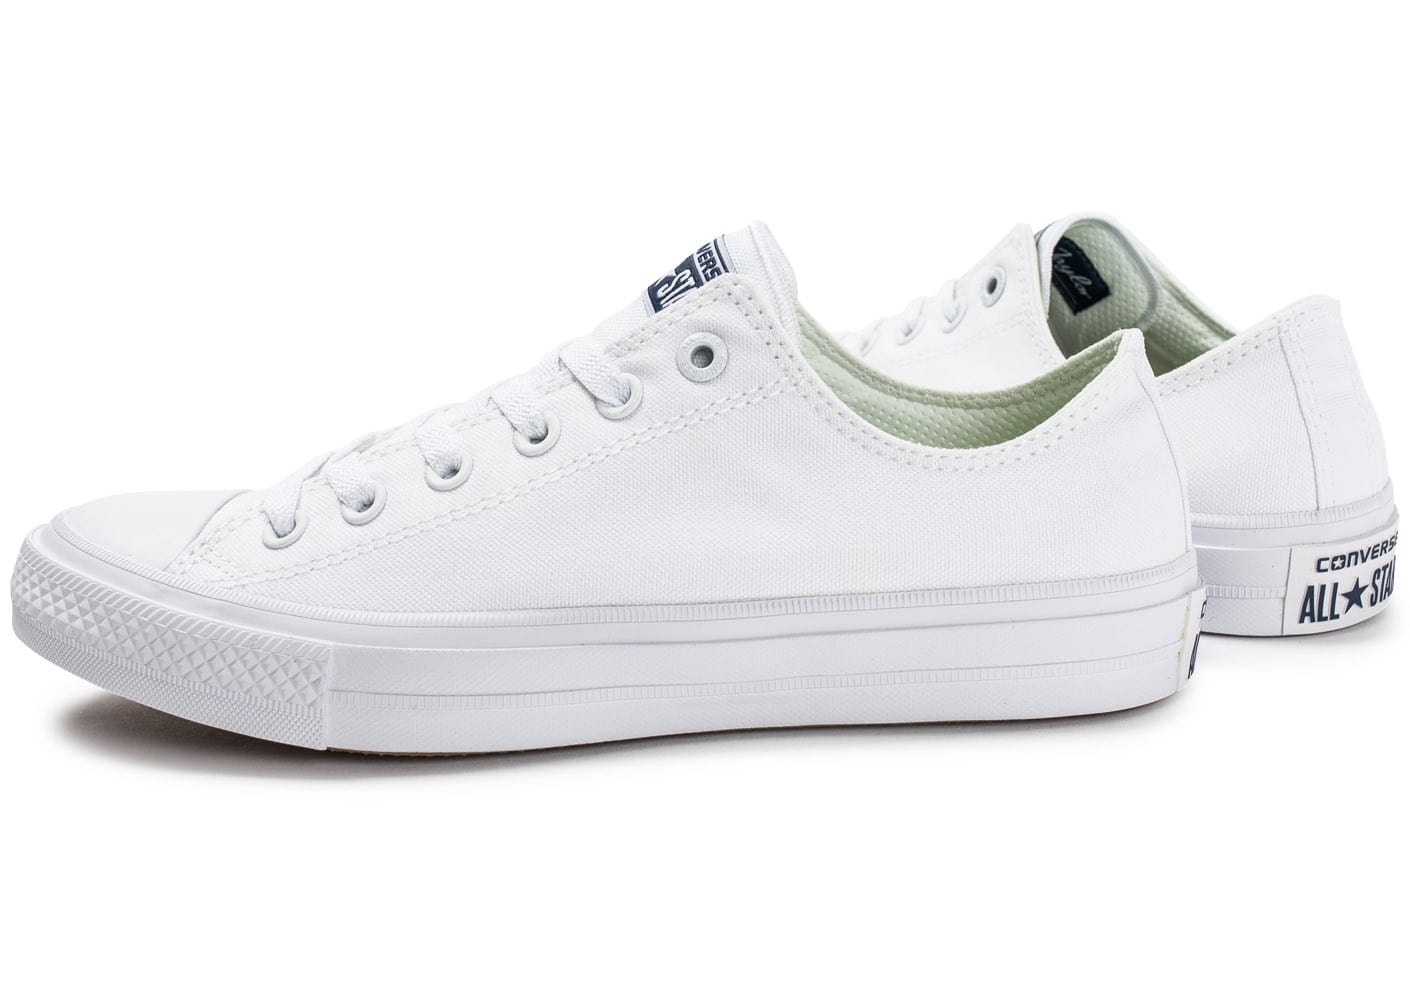 Homme All Chuck Converse Taylor Basketstennis 2 Storm Star Wind vzqfw4